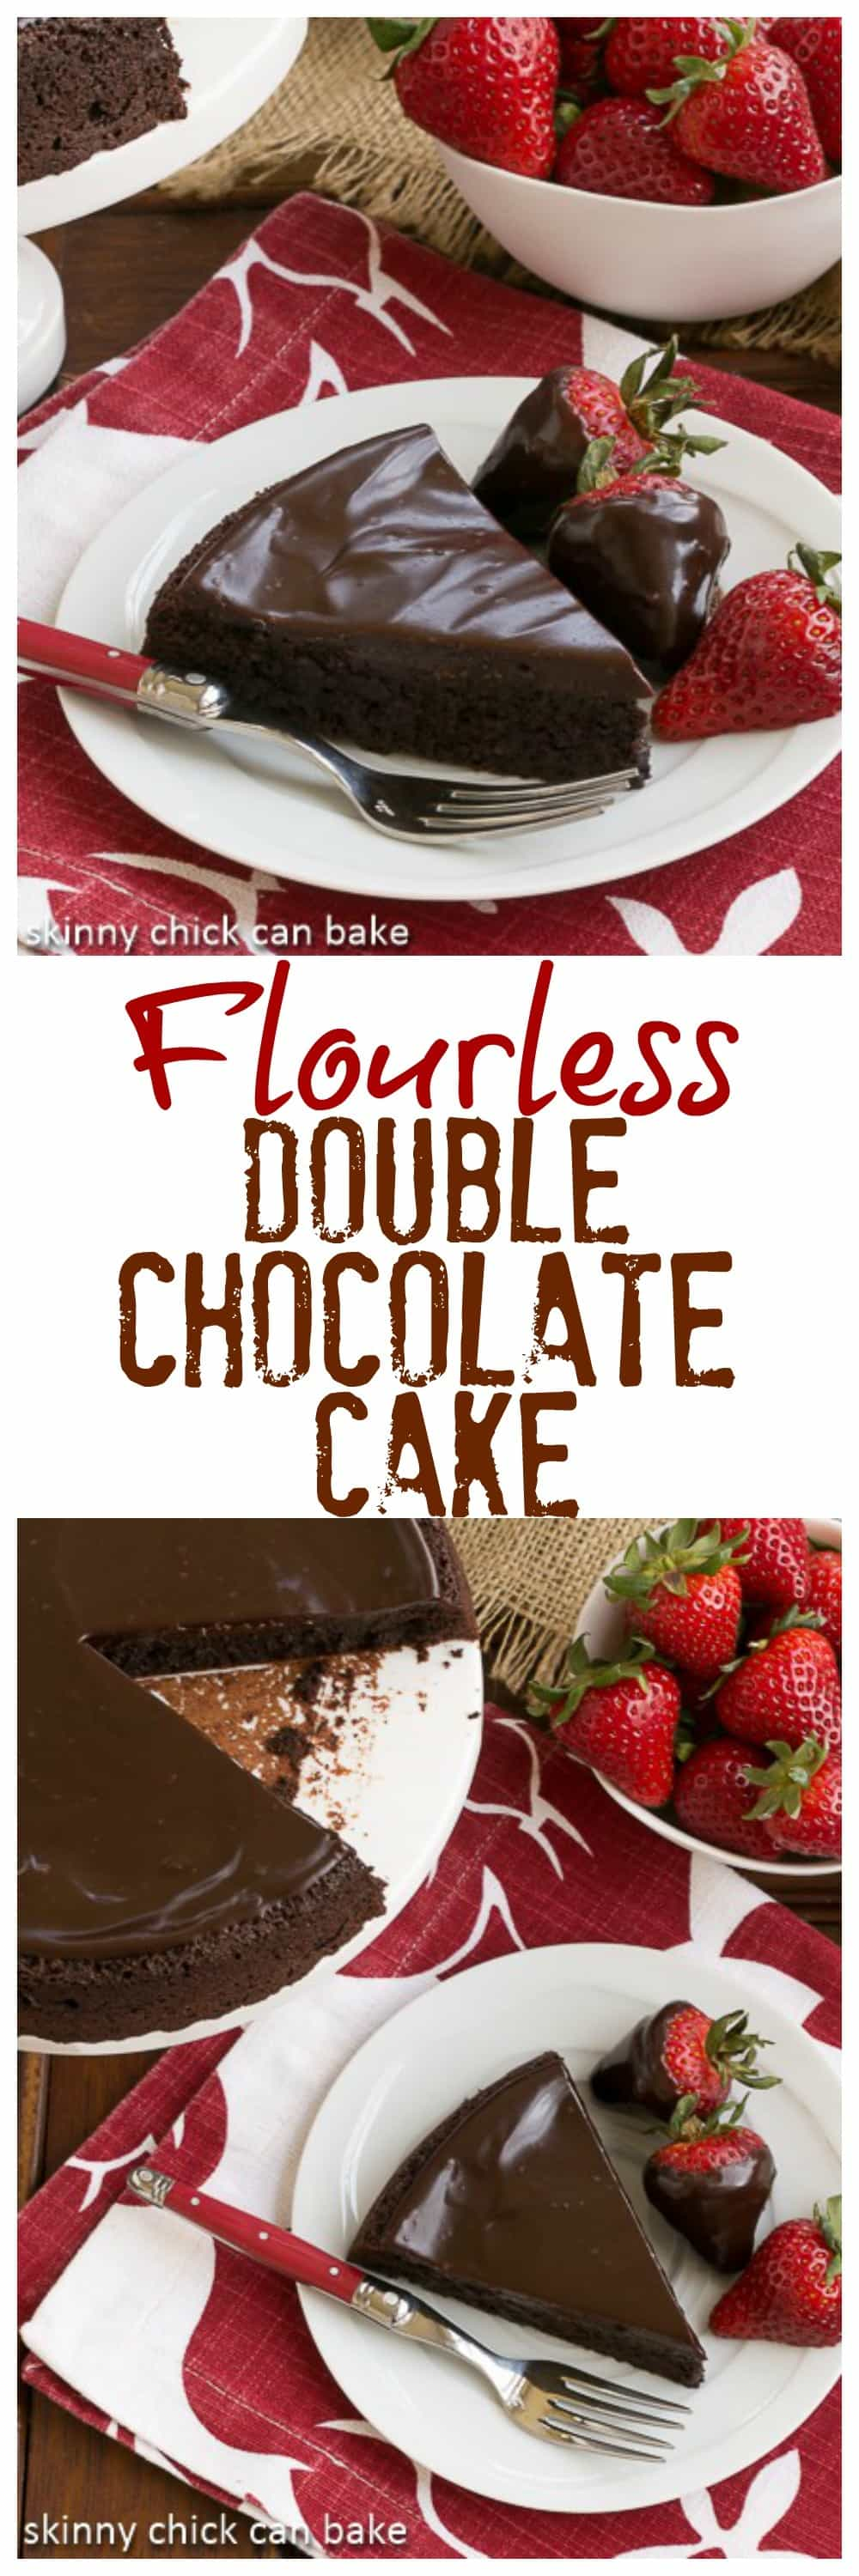 Flourless Double Chocolate Cake - An intensely chocolate cake for you chocoholics #chocolate #flourless #onelayer #cake